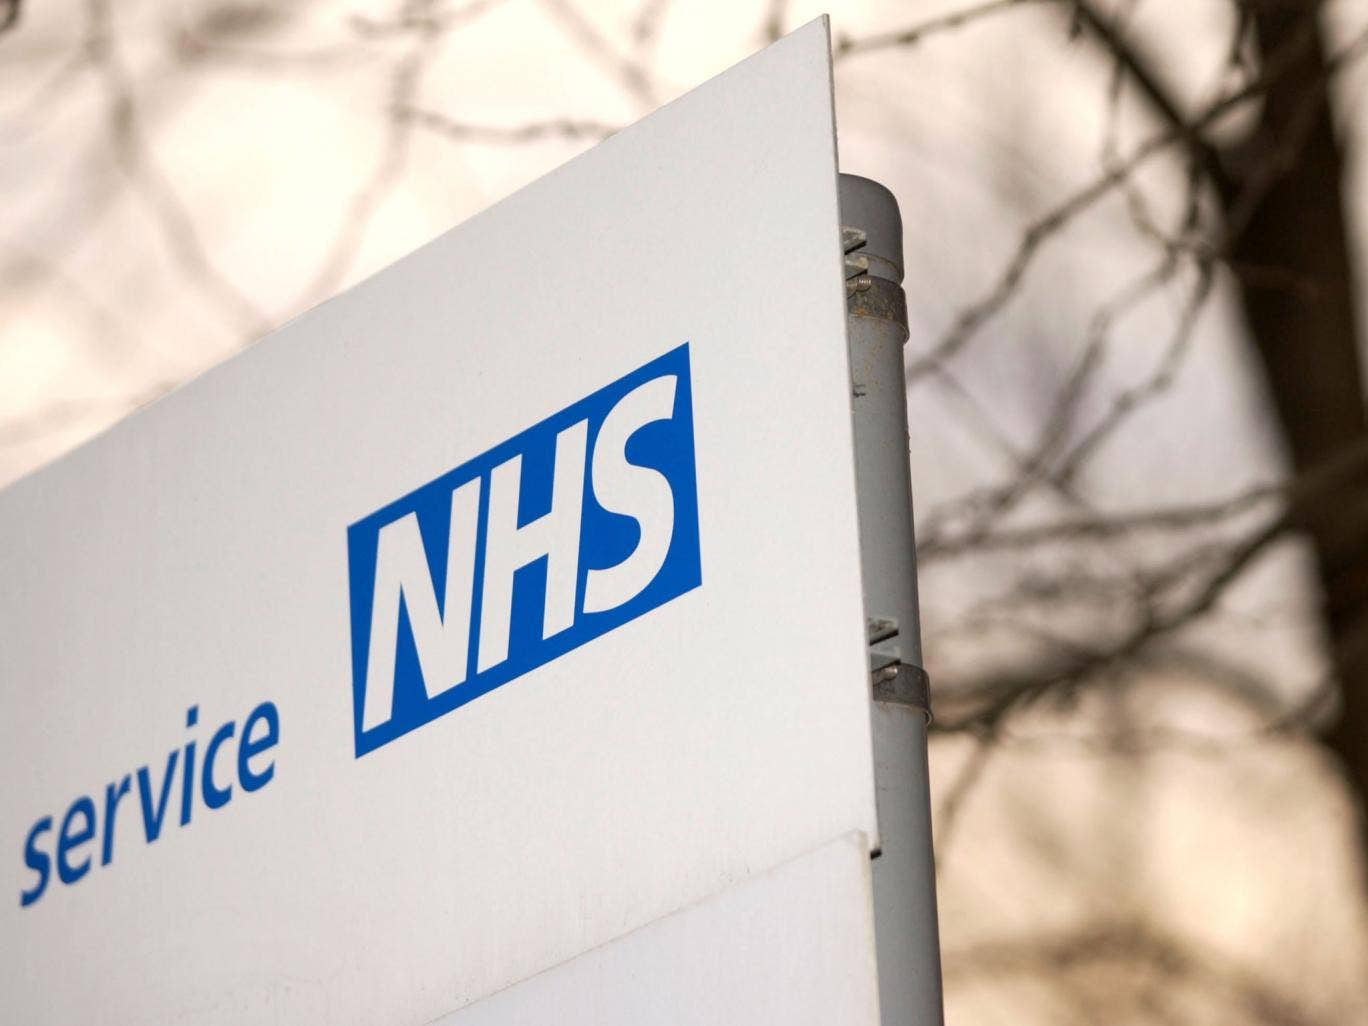 The leaders of 10 NHS organisations have called for an end to waves of criticism of the health service